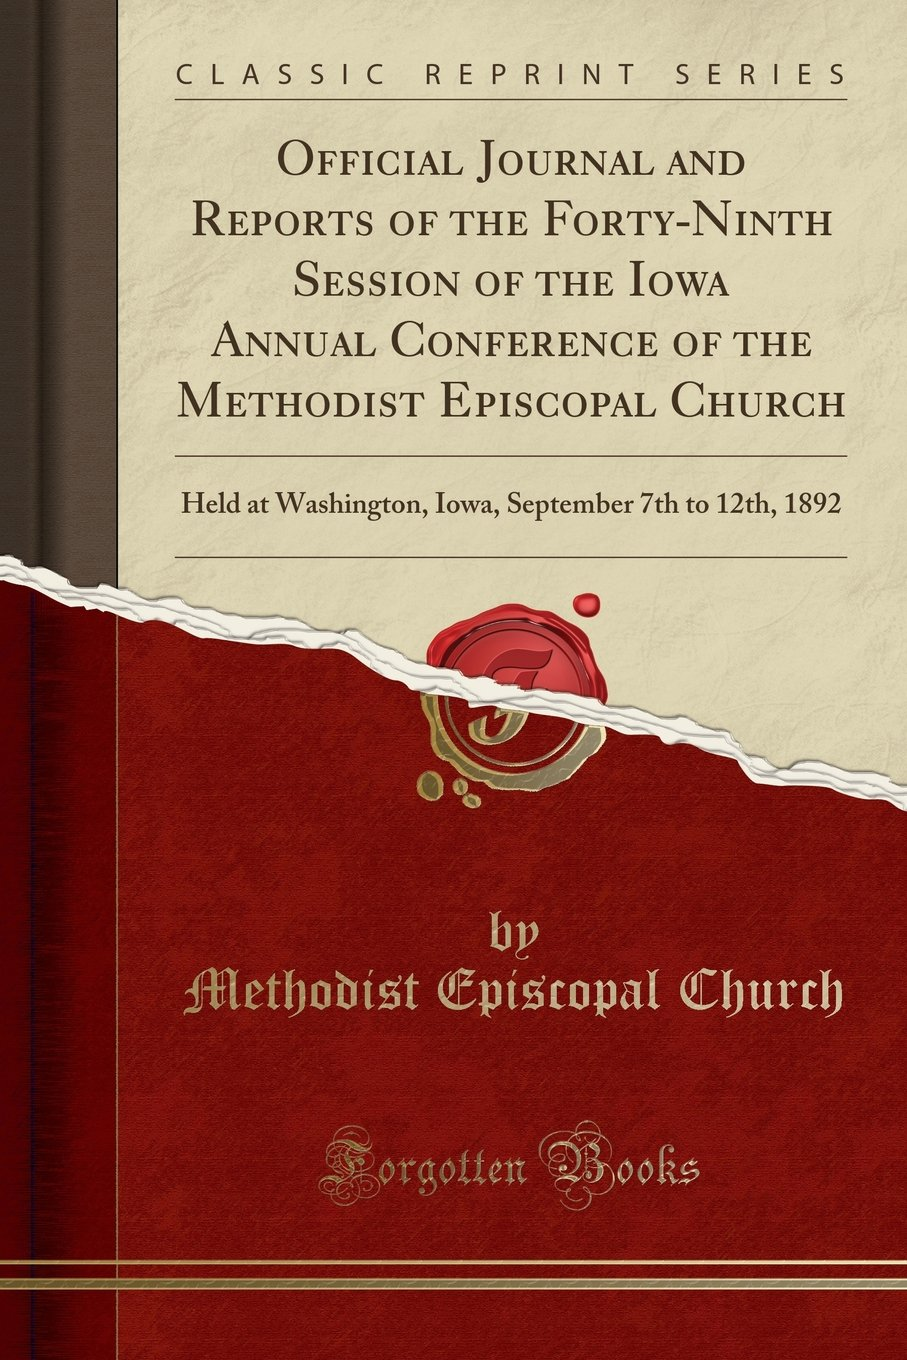 Download Official Journal and Reports of the Forty-Ninth Session of the Iowa Annual Conference of the Methodist Episcopal Church: Held at Washington, Iowa, September 7th to 12th, 1892 (Classic Reprint) ebook